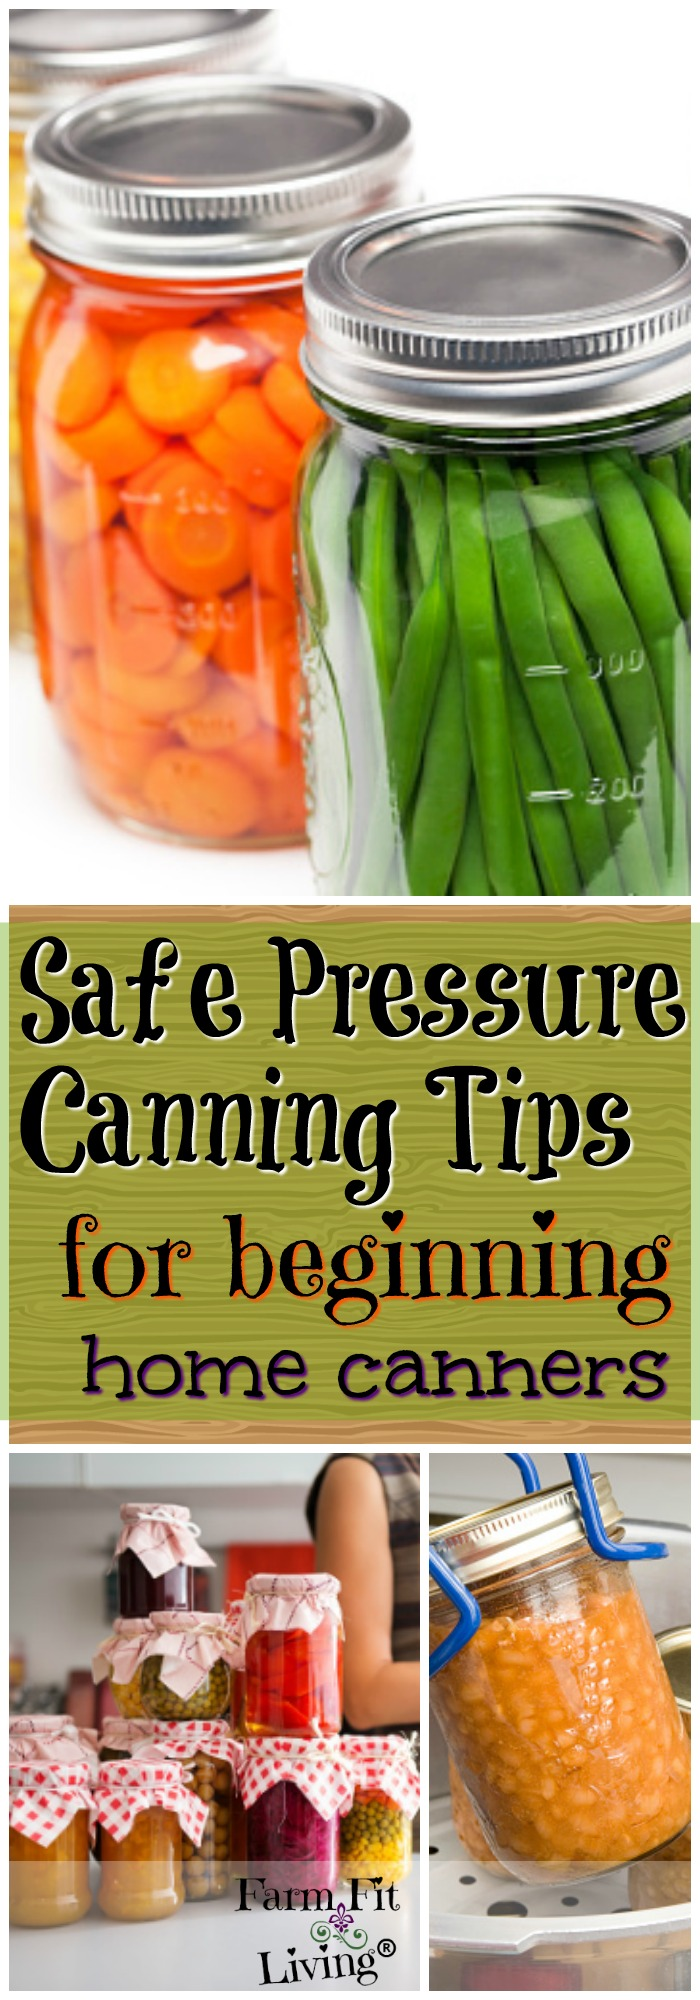 Are you looking for a good list of safe pressure canning tips? These tips are proven ways you'll have a safe canning experience.